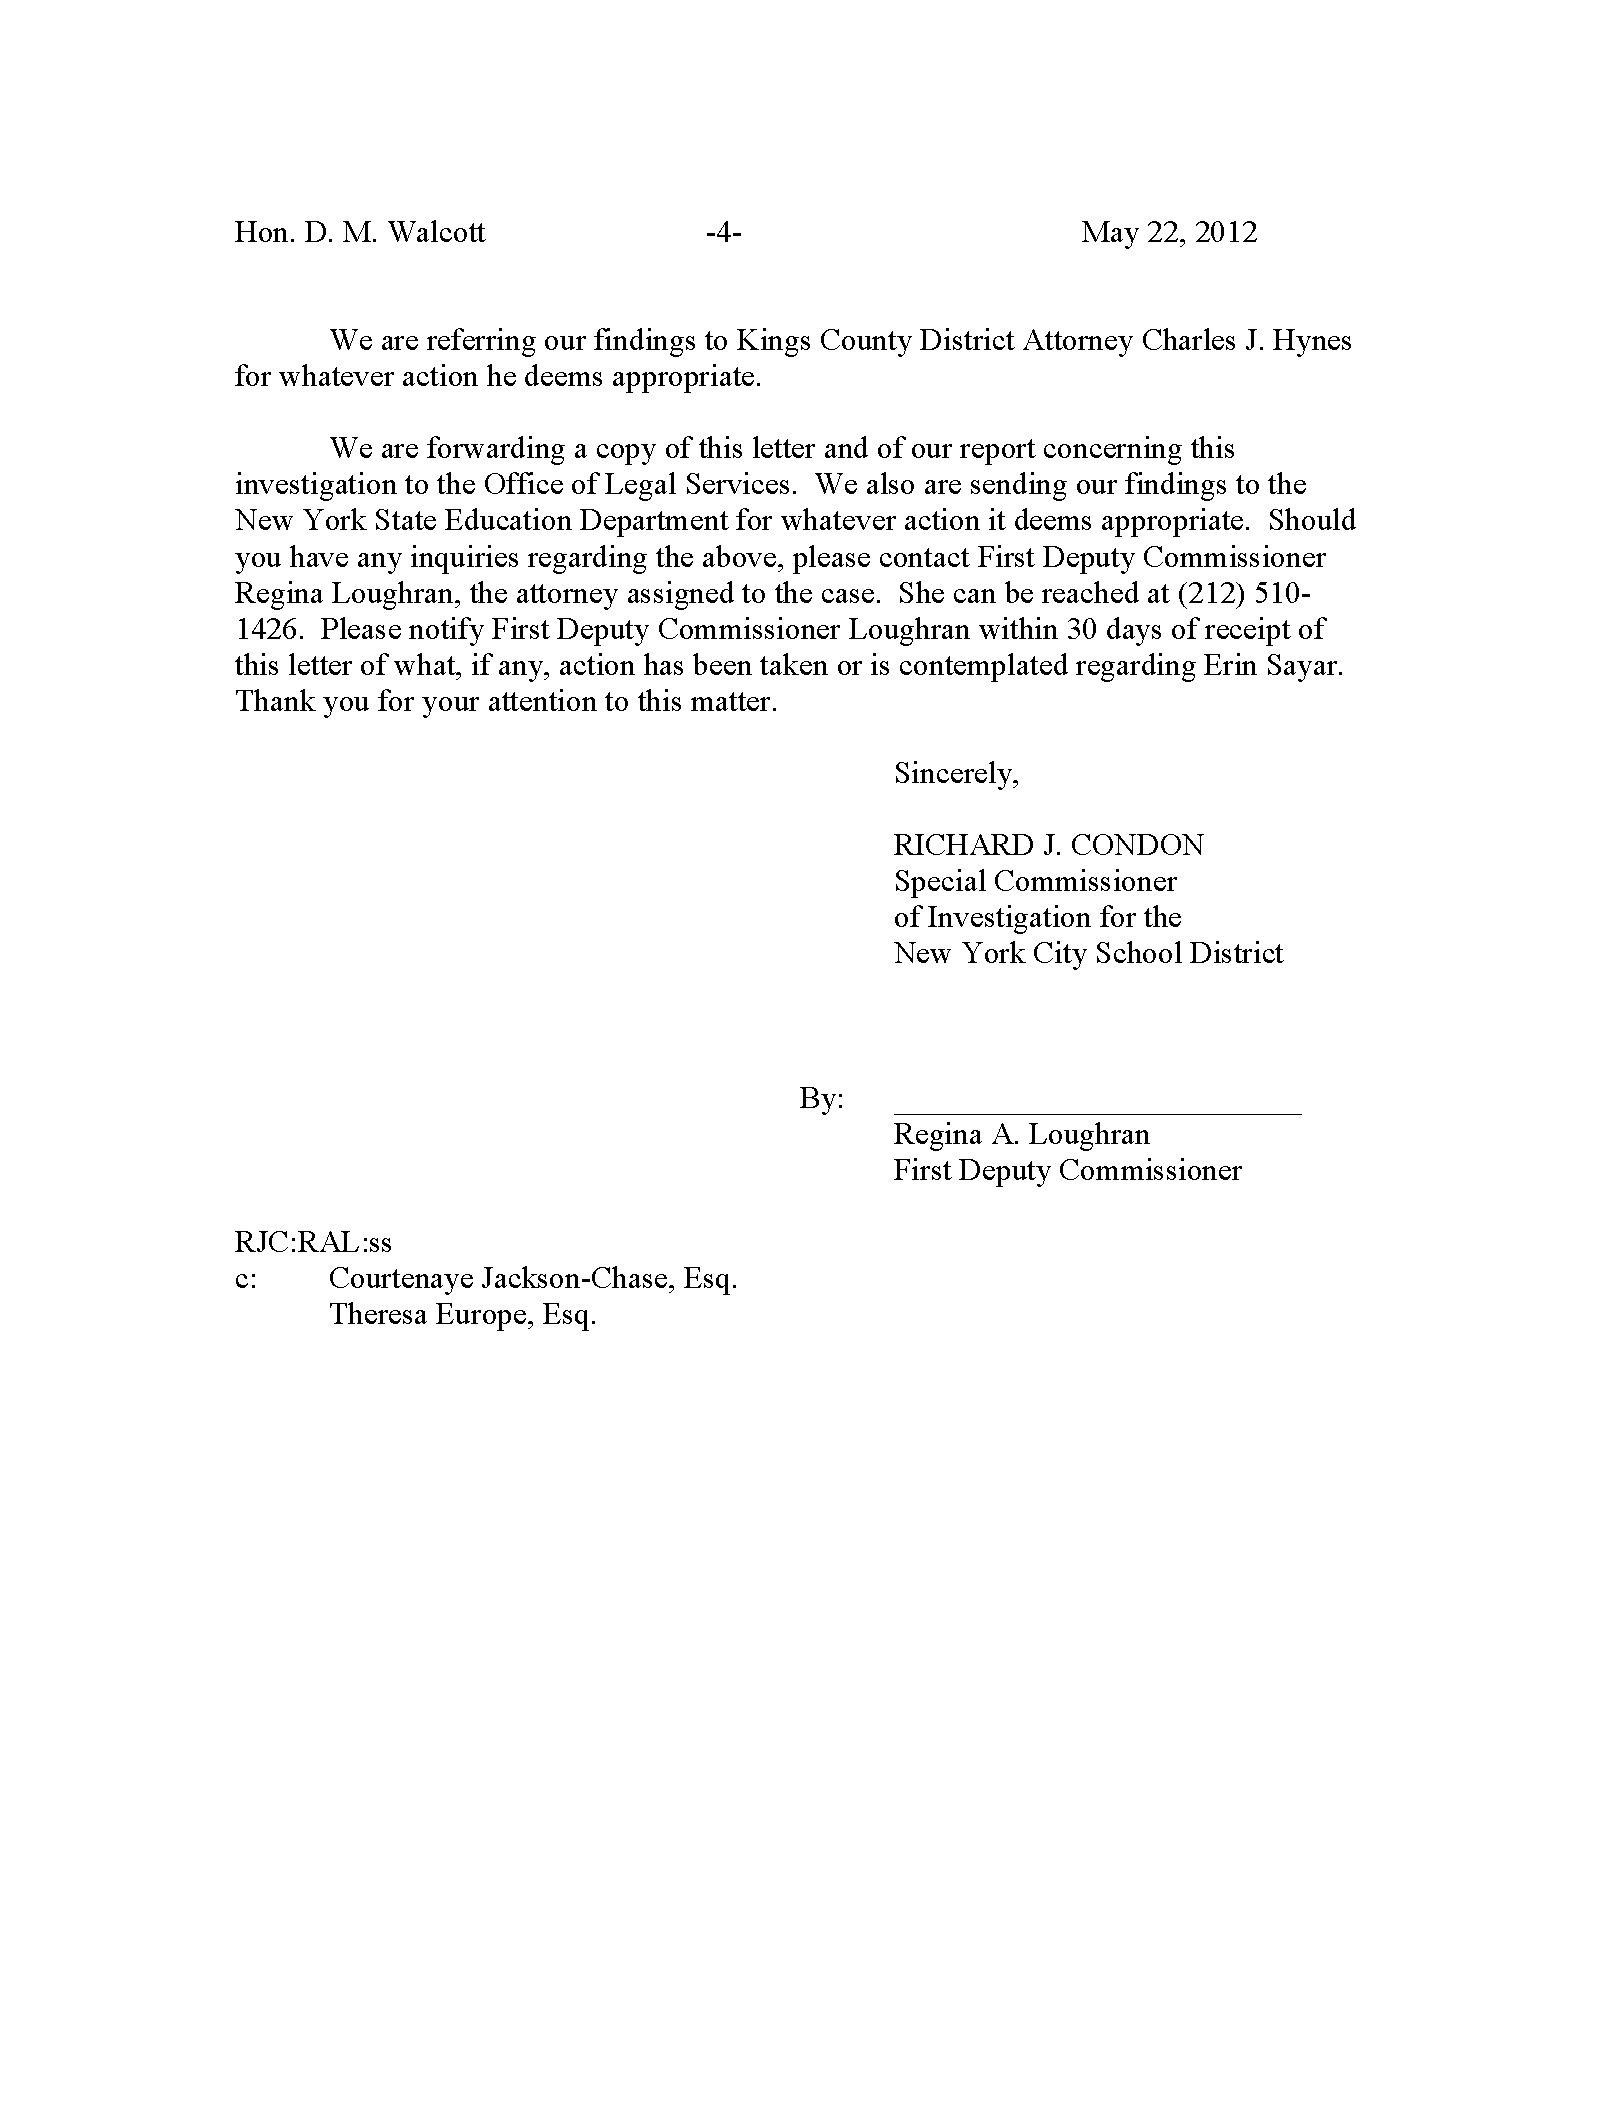 Copy of sayar erin investigative letter4.png